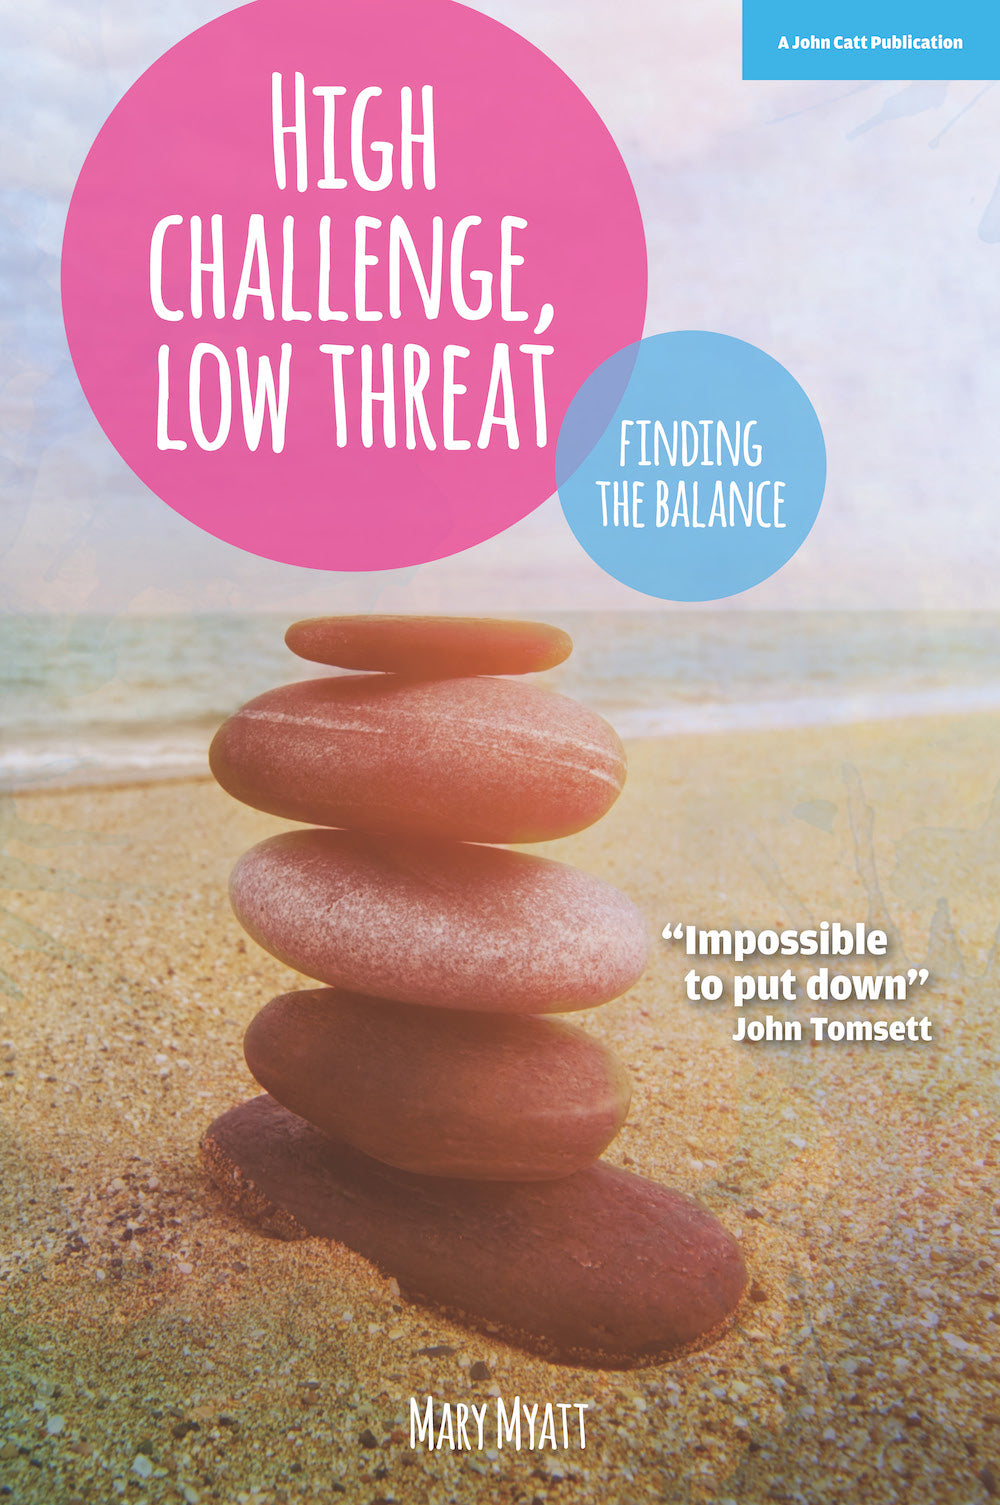 High Challenge, Low Threat: How great school leaders find the balance